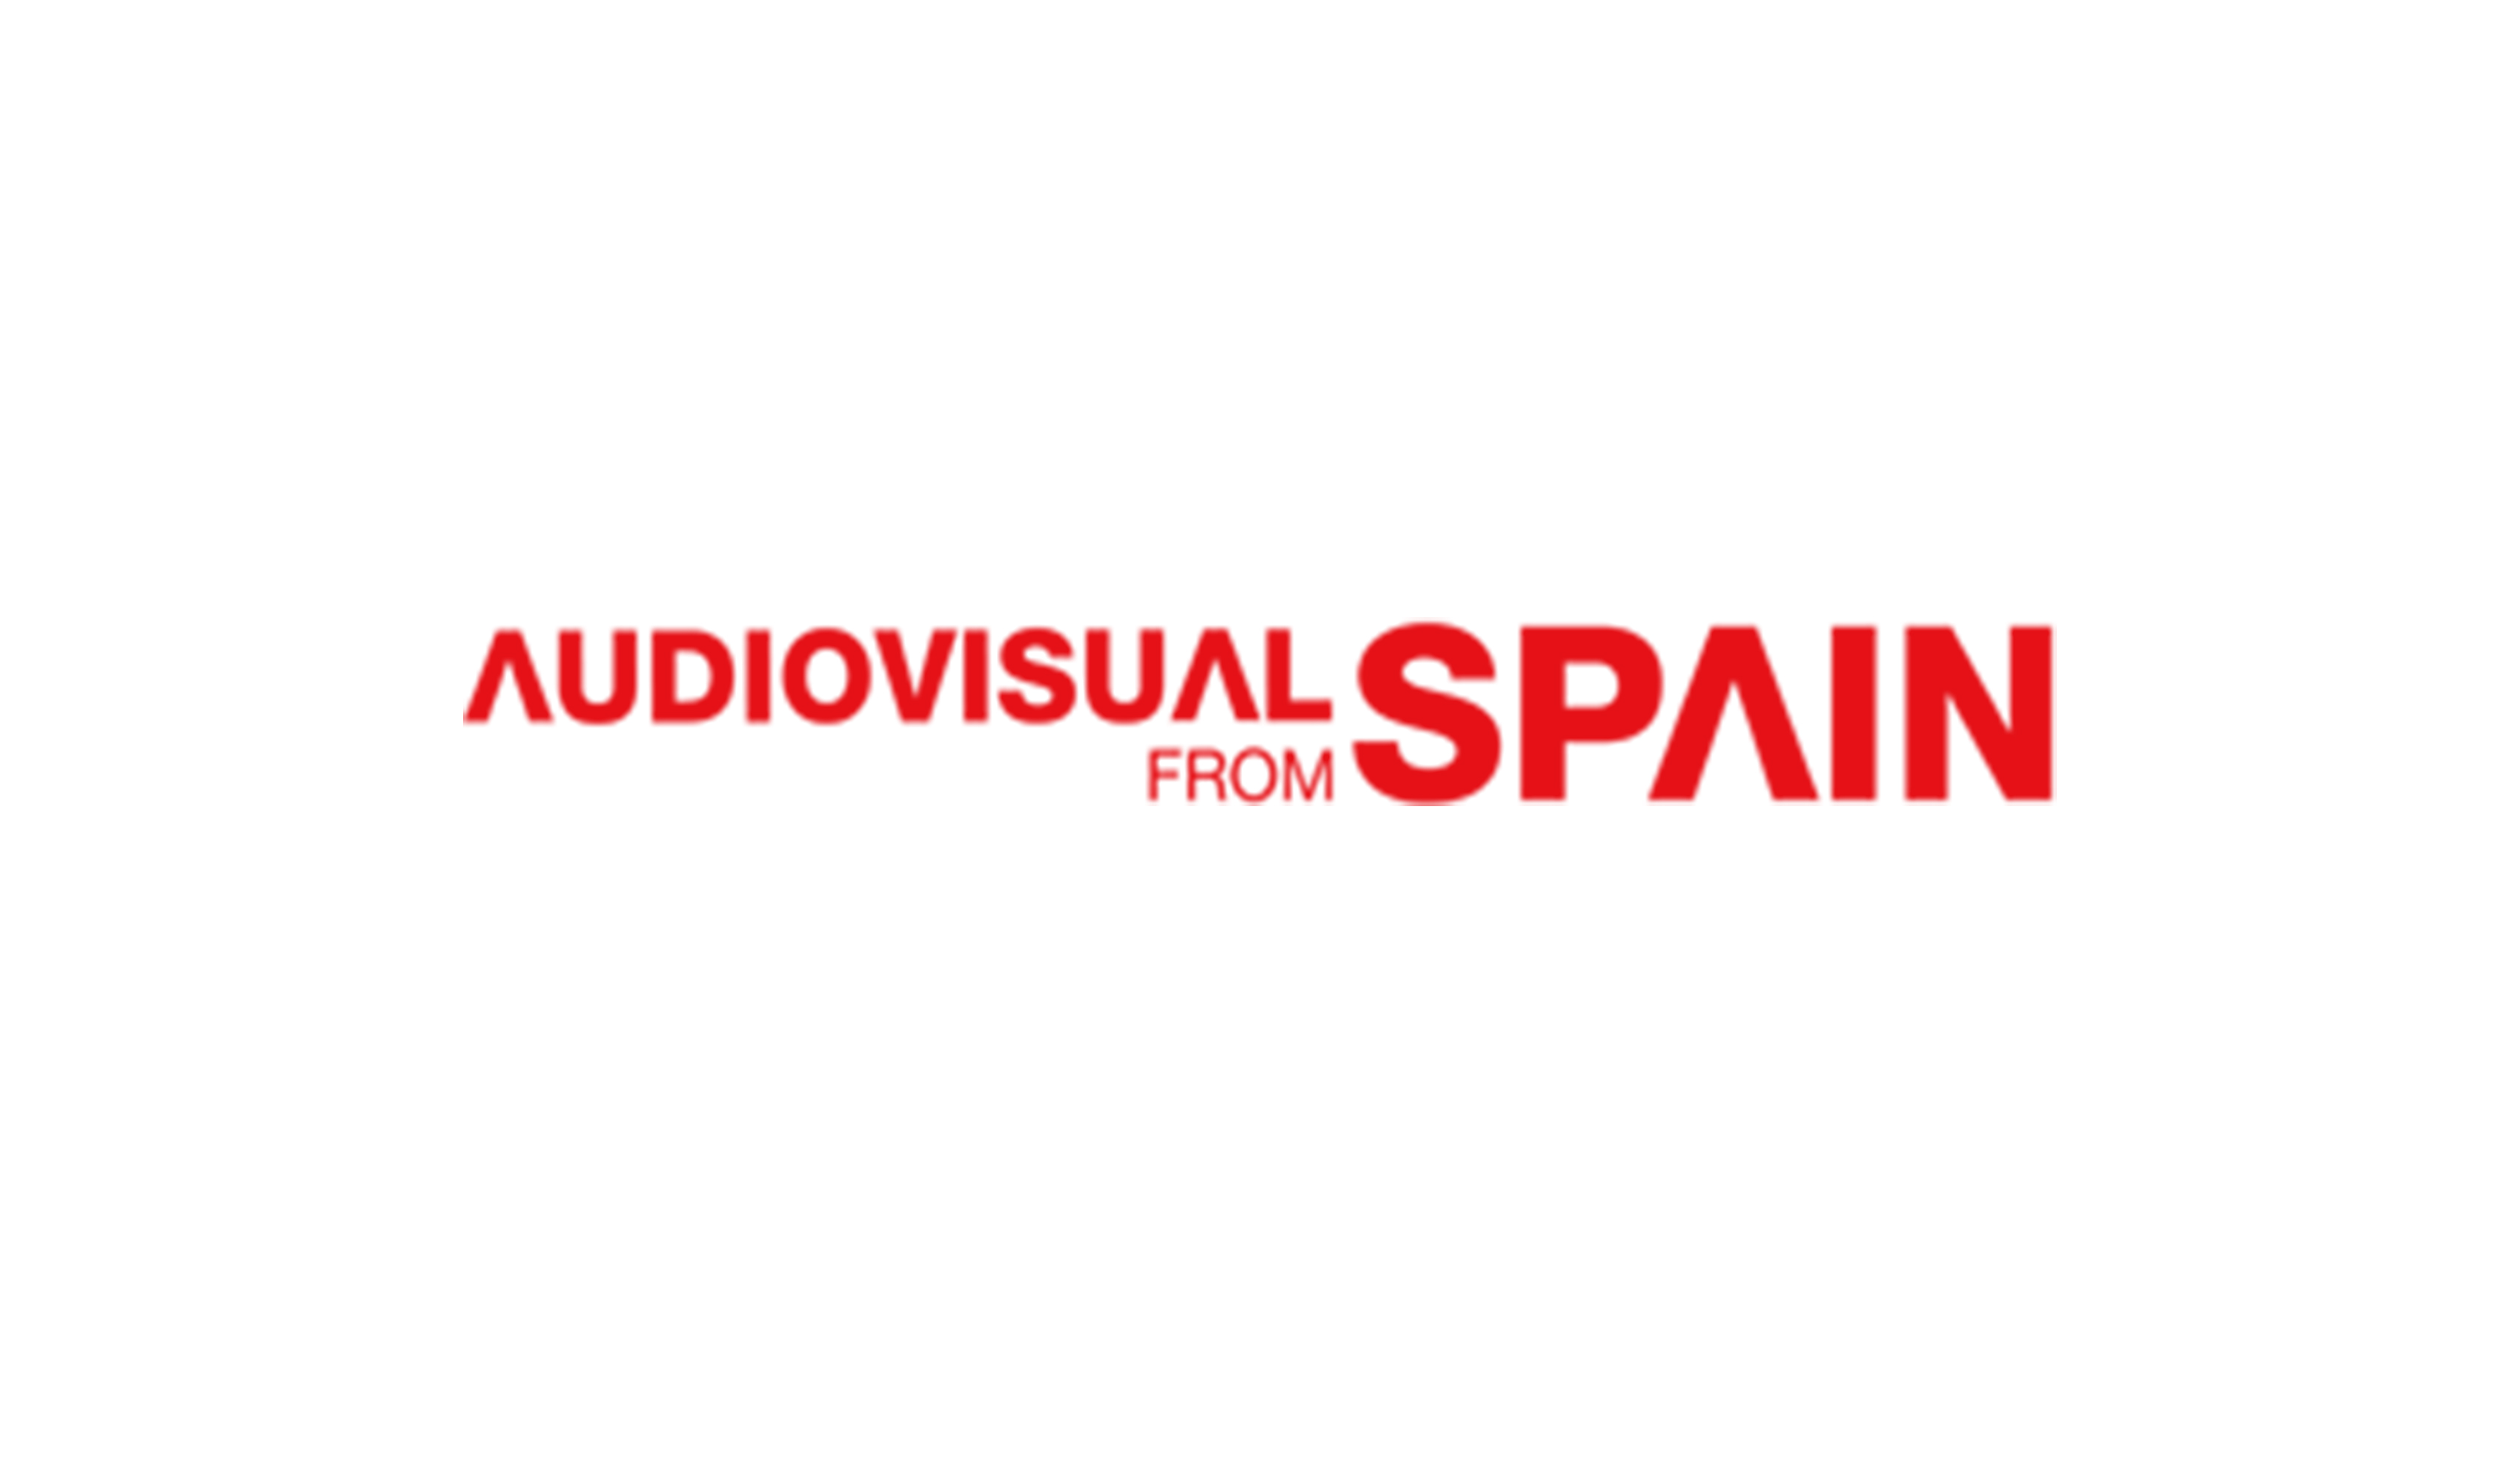 AUDIOVISUAL FROM SPAIN